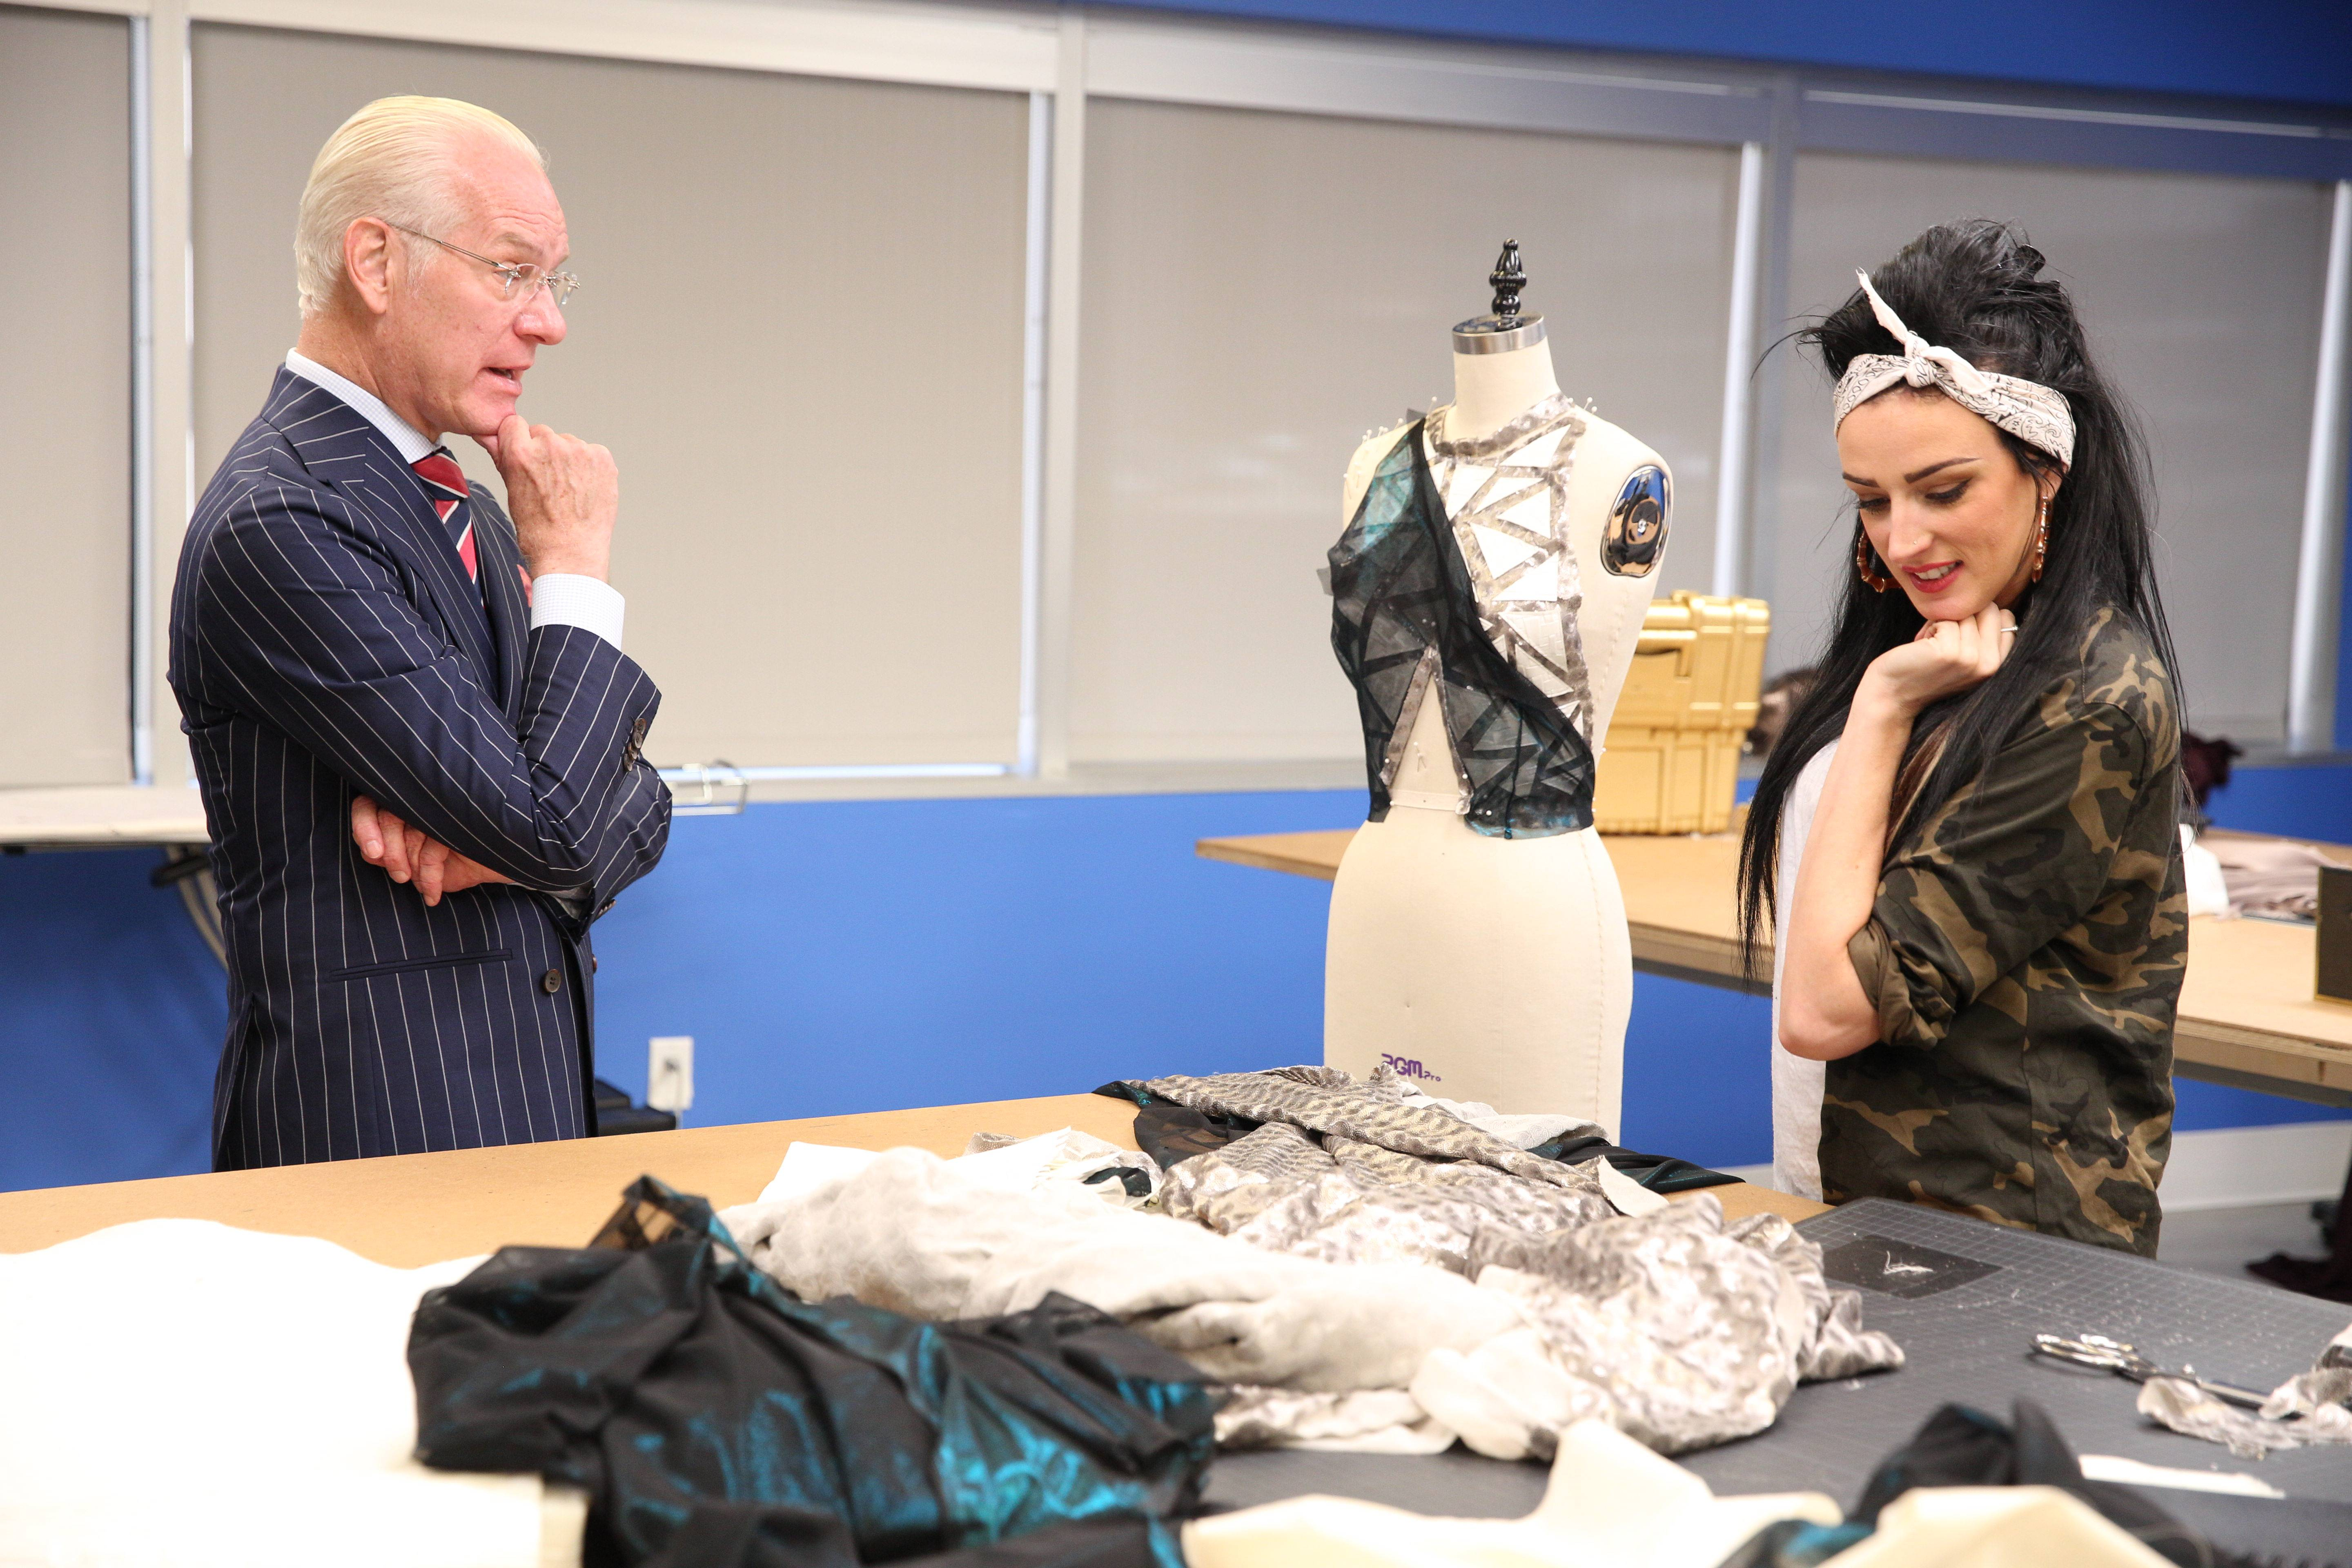 (L to R) Tim Gunn and Kelly Dempsey during the twelfth challenge of Project Runway season 14, airing Thursday, October 22, at 9pm ET/PT on Lifetime. Photo by Barbara Nitke Copyright 2015